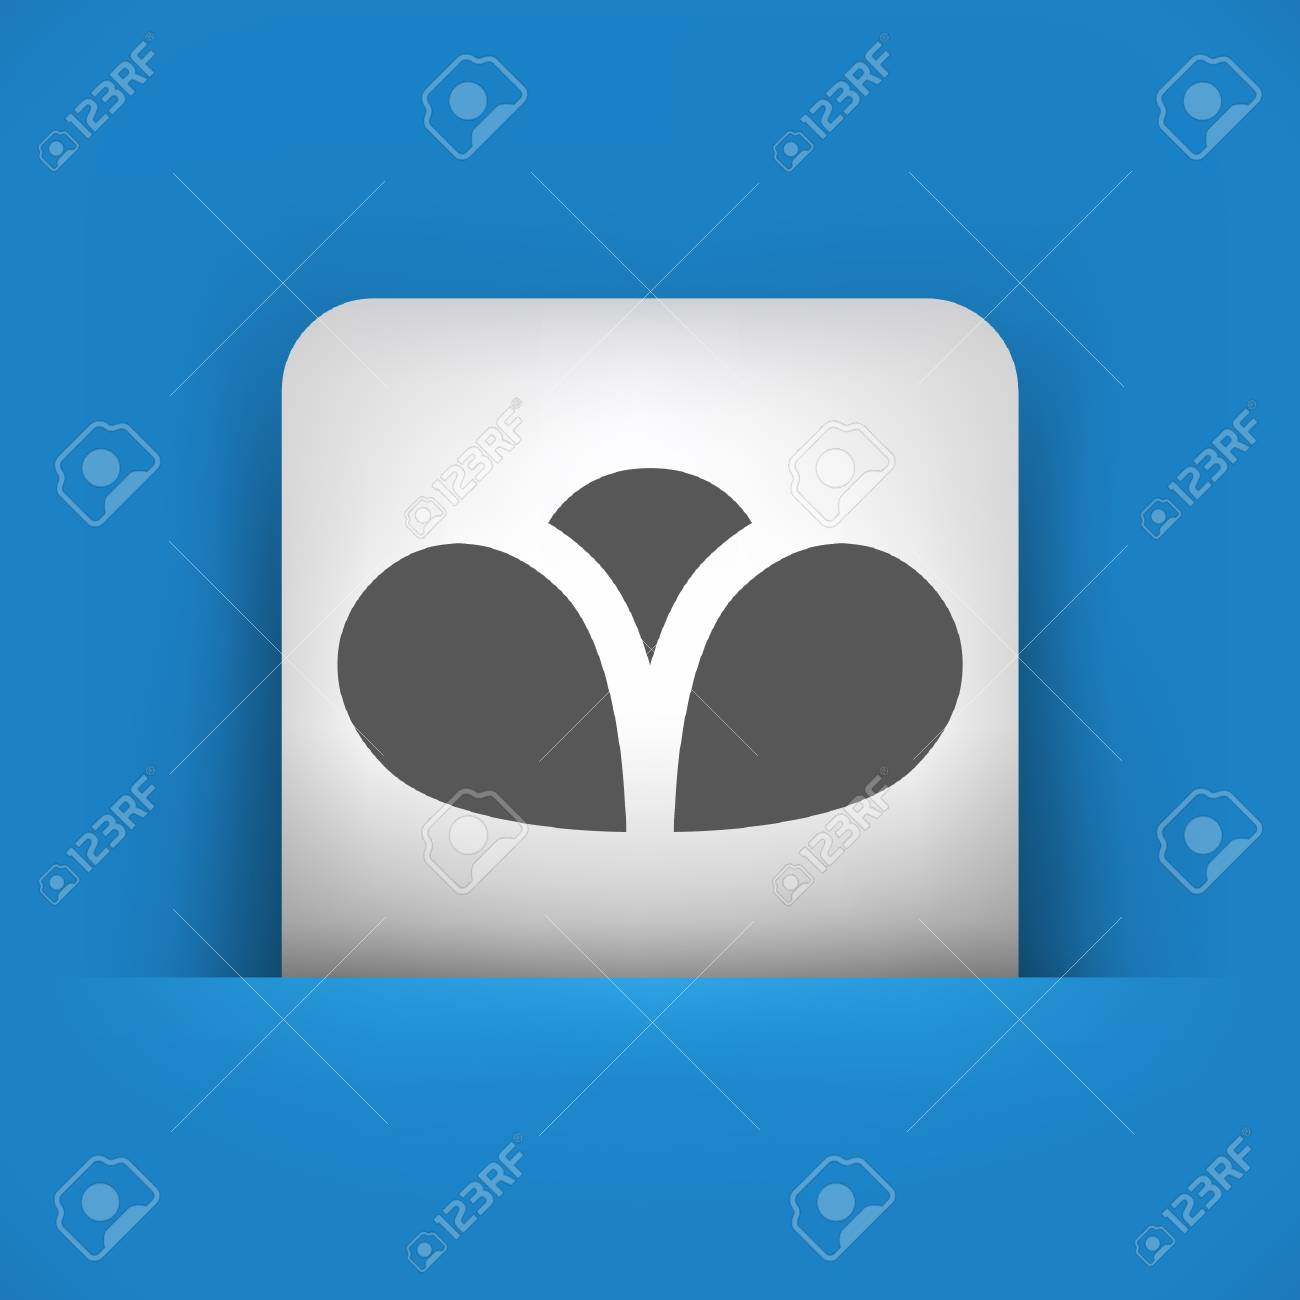 Vector illustration of single blue and gray isolated icon. Stock Vector - 17782115